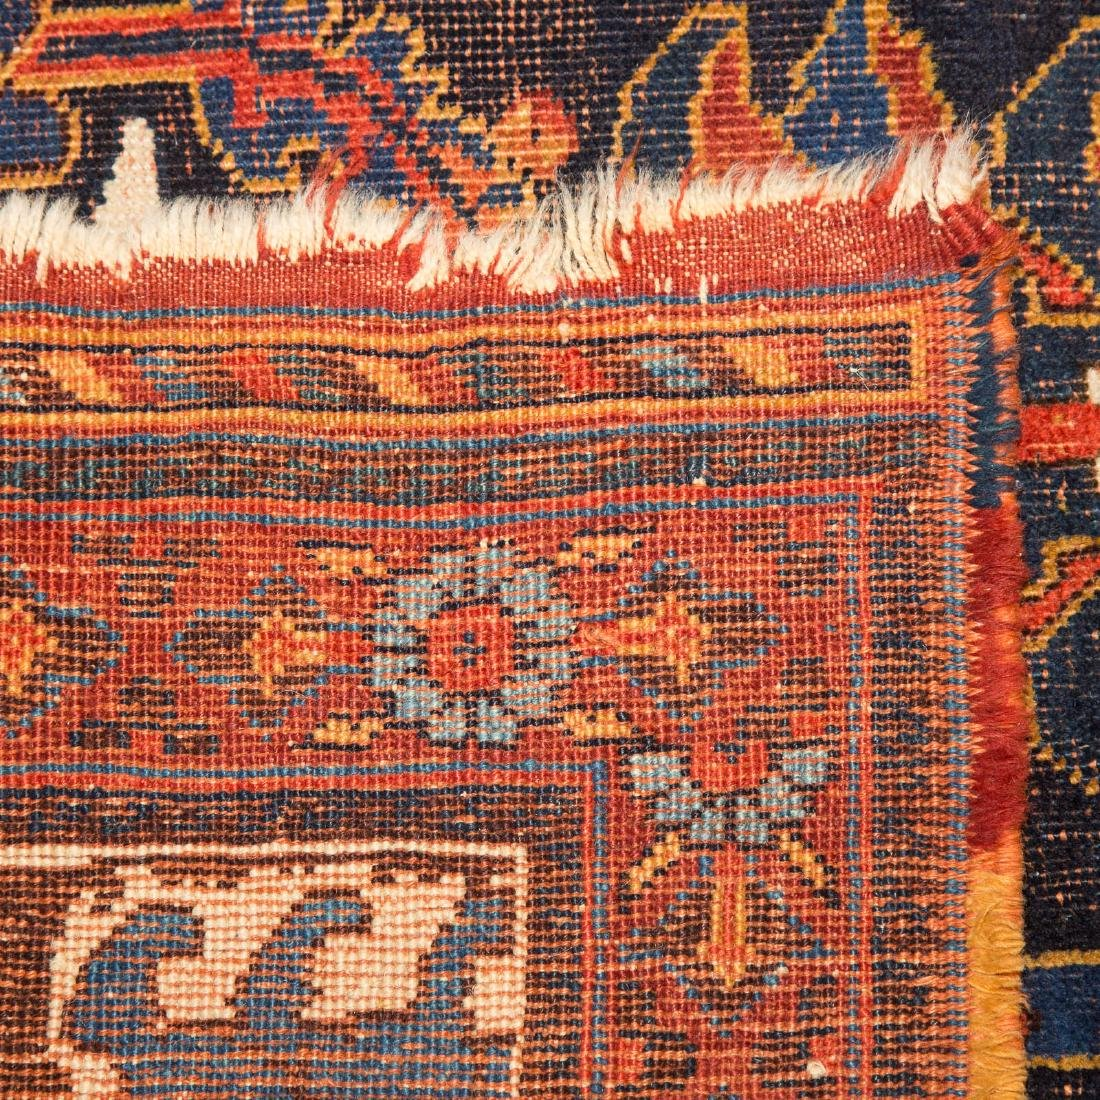 Antique Kashkai rug, approx. 7 x 12.6 - 3